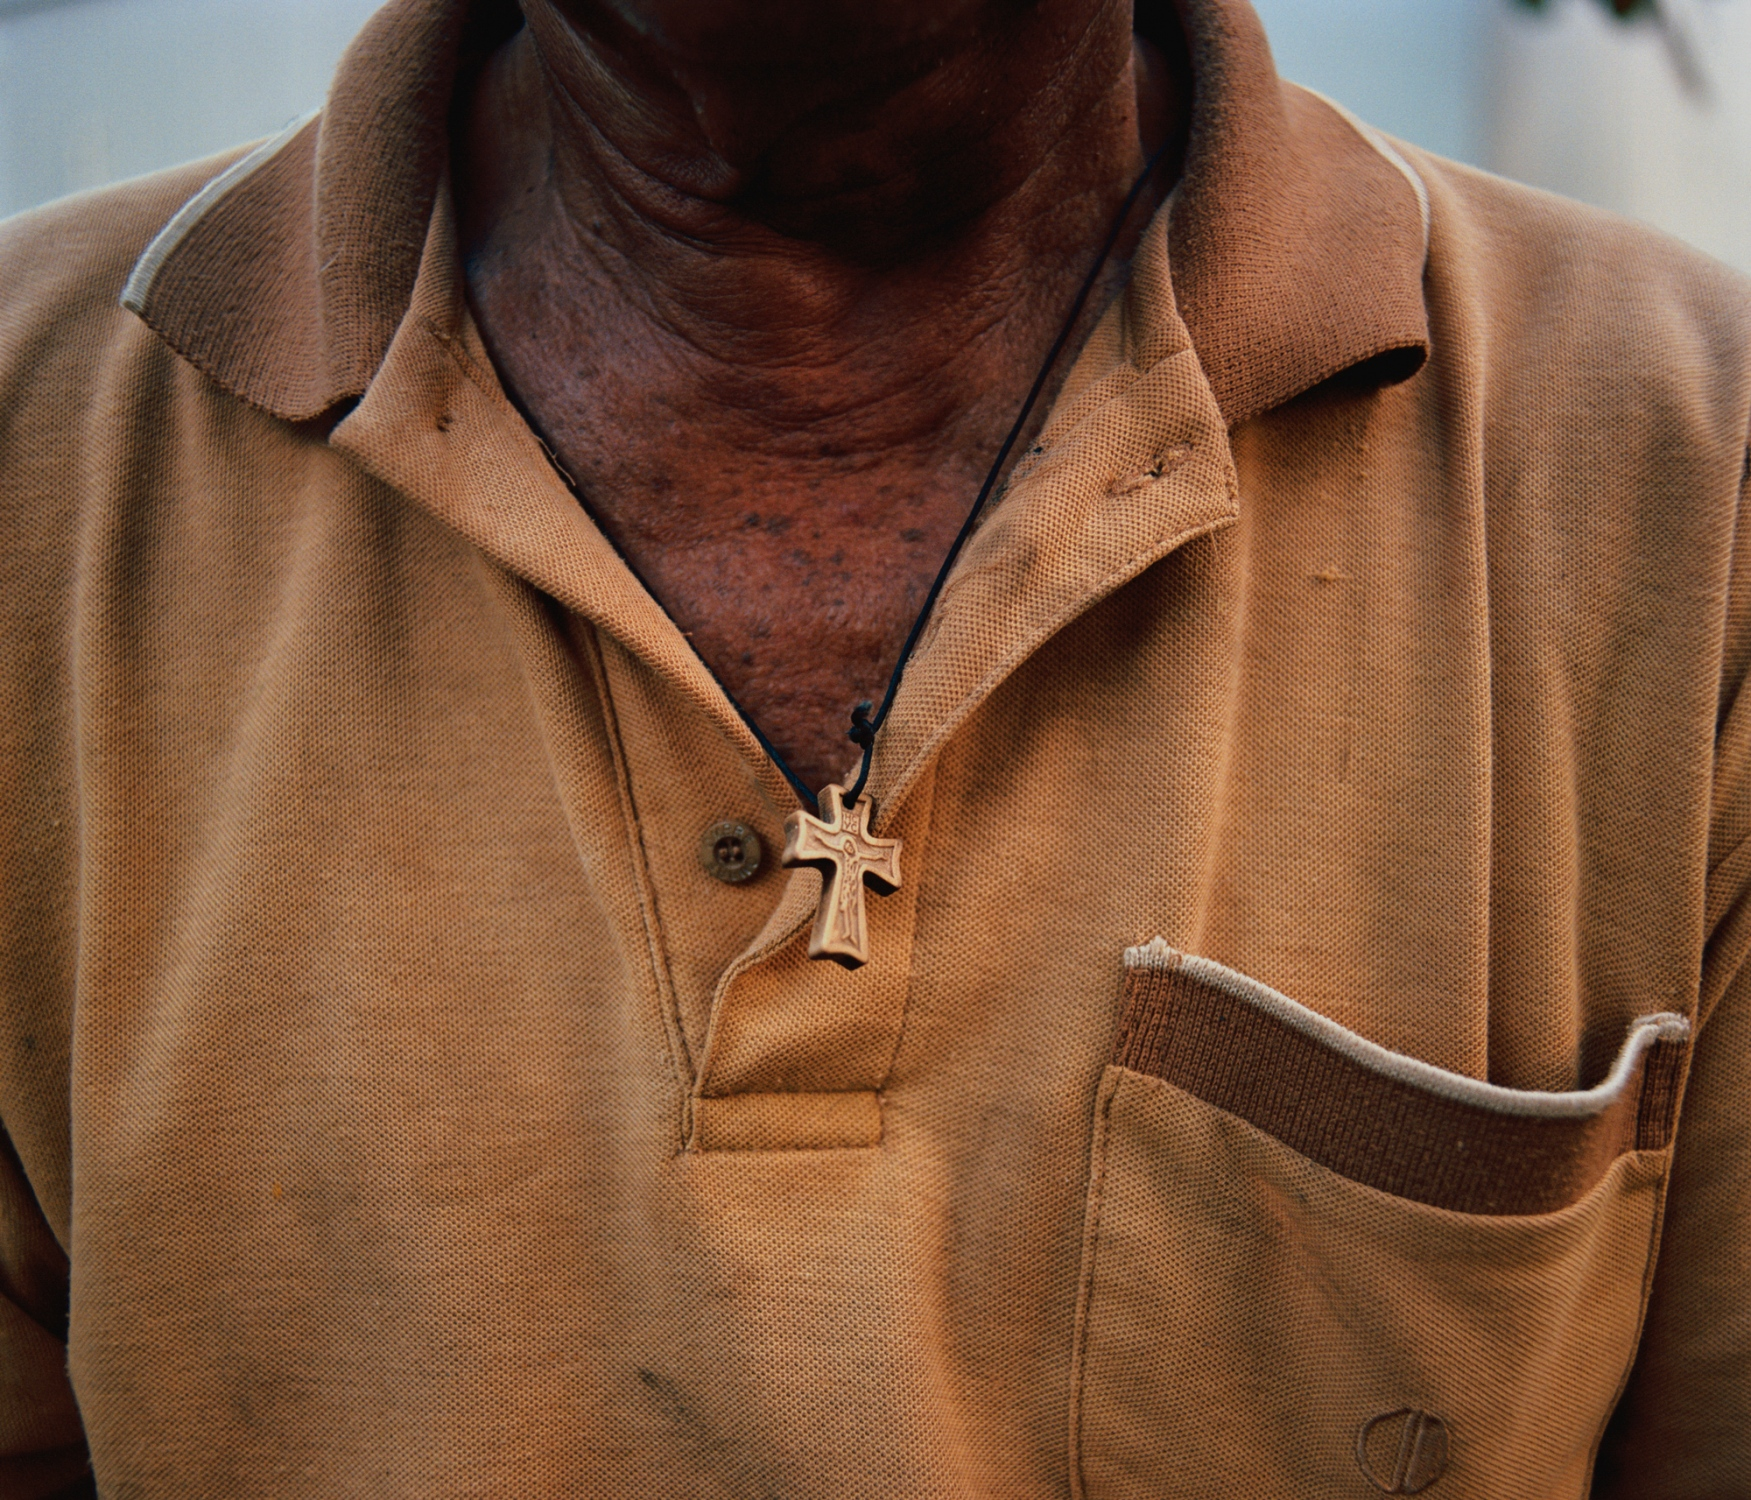 My grandfather Horacio's daily attire- his necklace, with a wooden cross, and a collared shirt - that he wears to perform the daily errands around the property, soaks up the colors of the early morning sunrise. Villalba, Puerto Rico, July 2018.